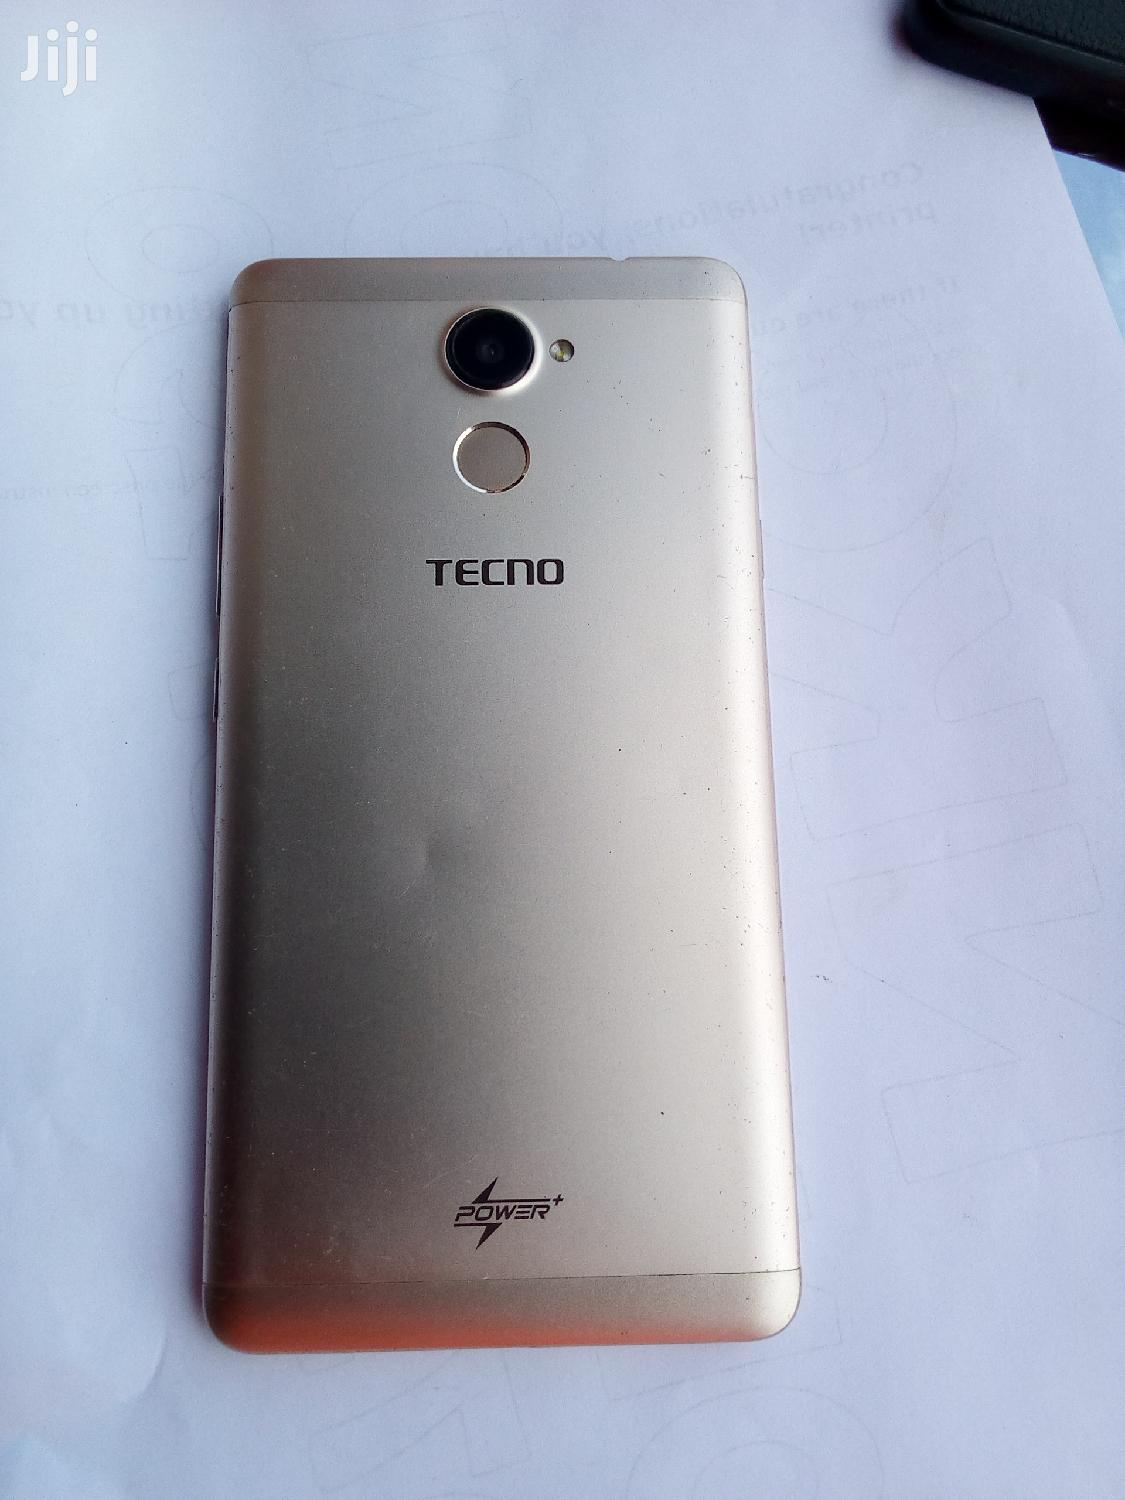 Archive: Tecno L9 Plus 16 GB Gold